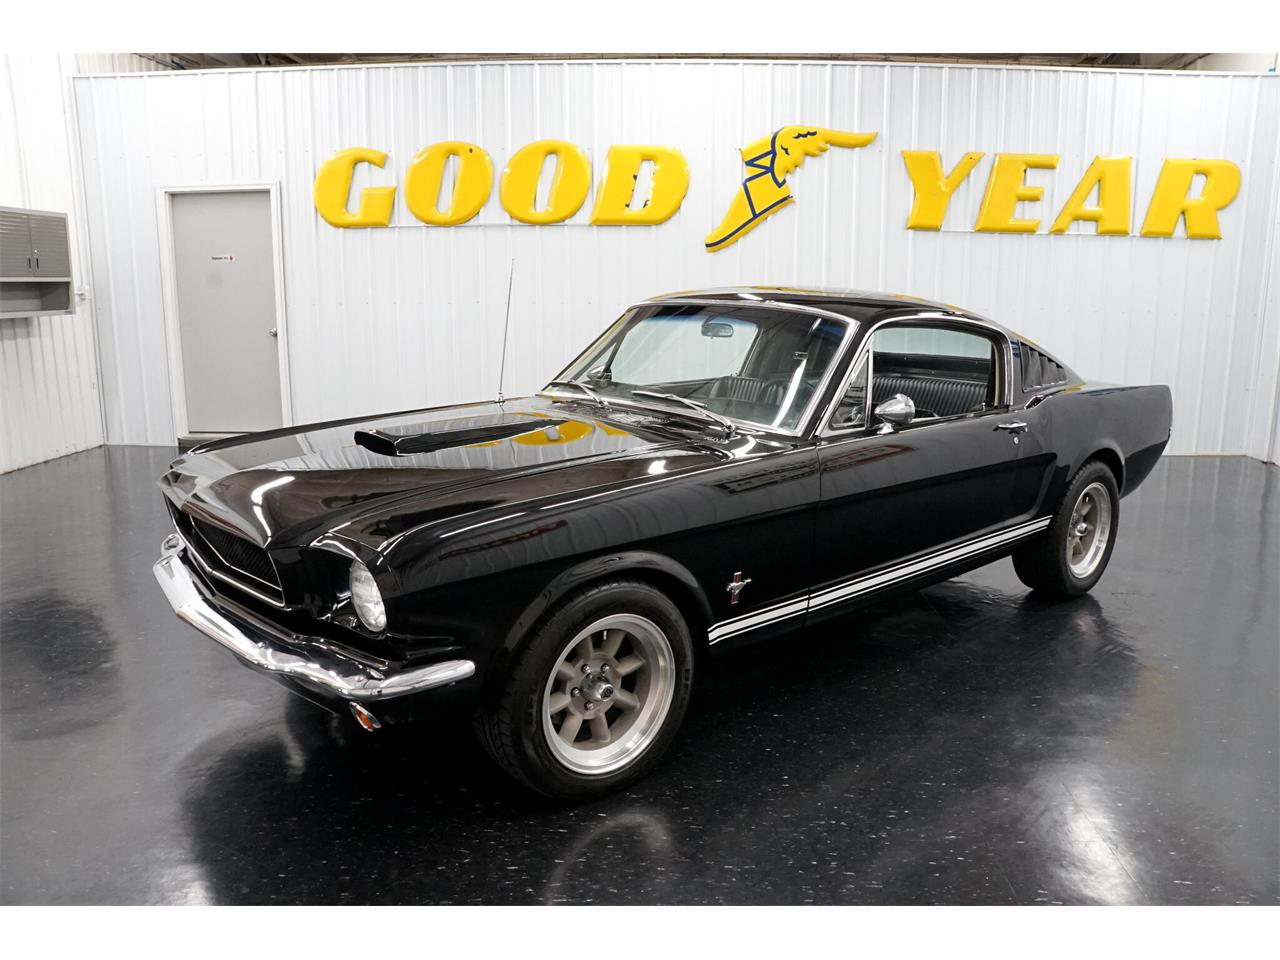 Ford Mustang V8 gta pony pack 1965 prix tout compris 1965